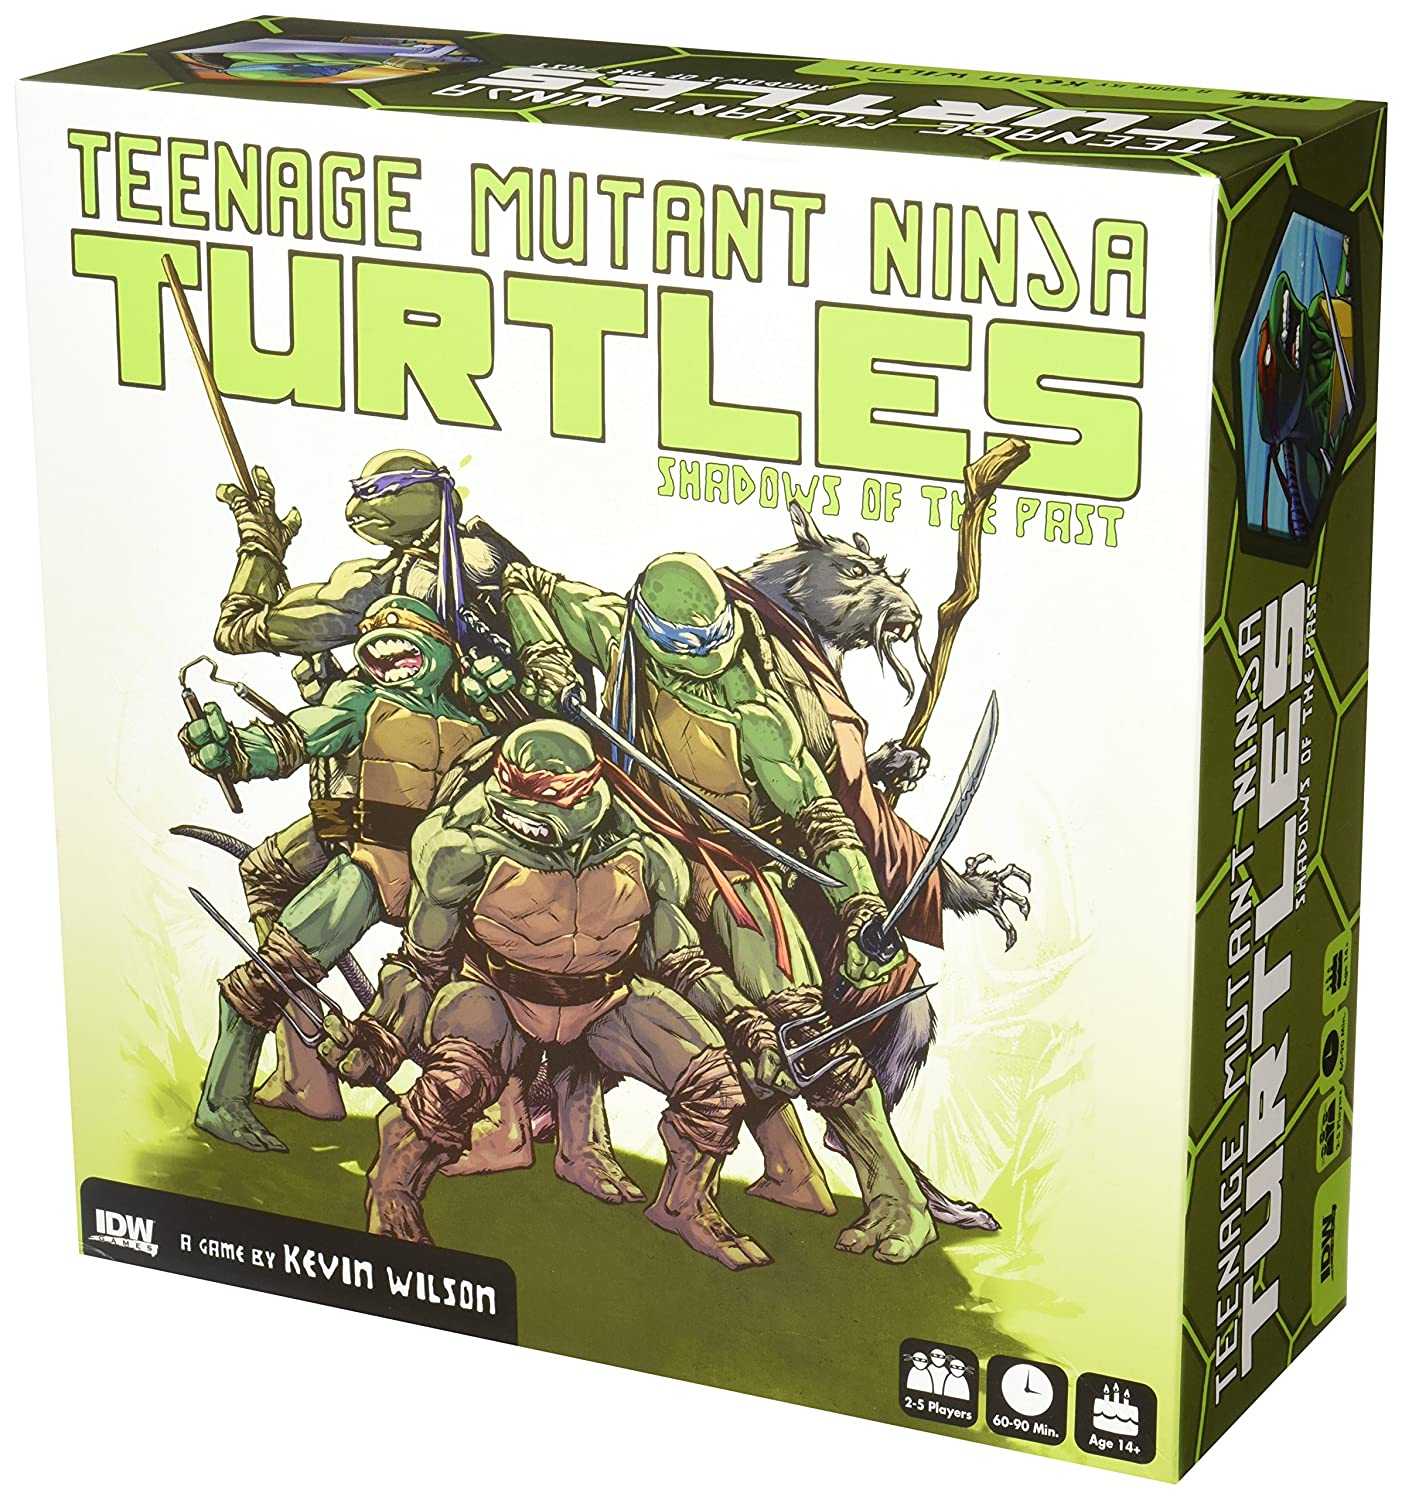 teen-age-muntant-ninja-turtles